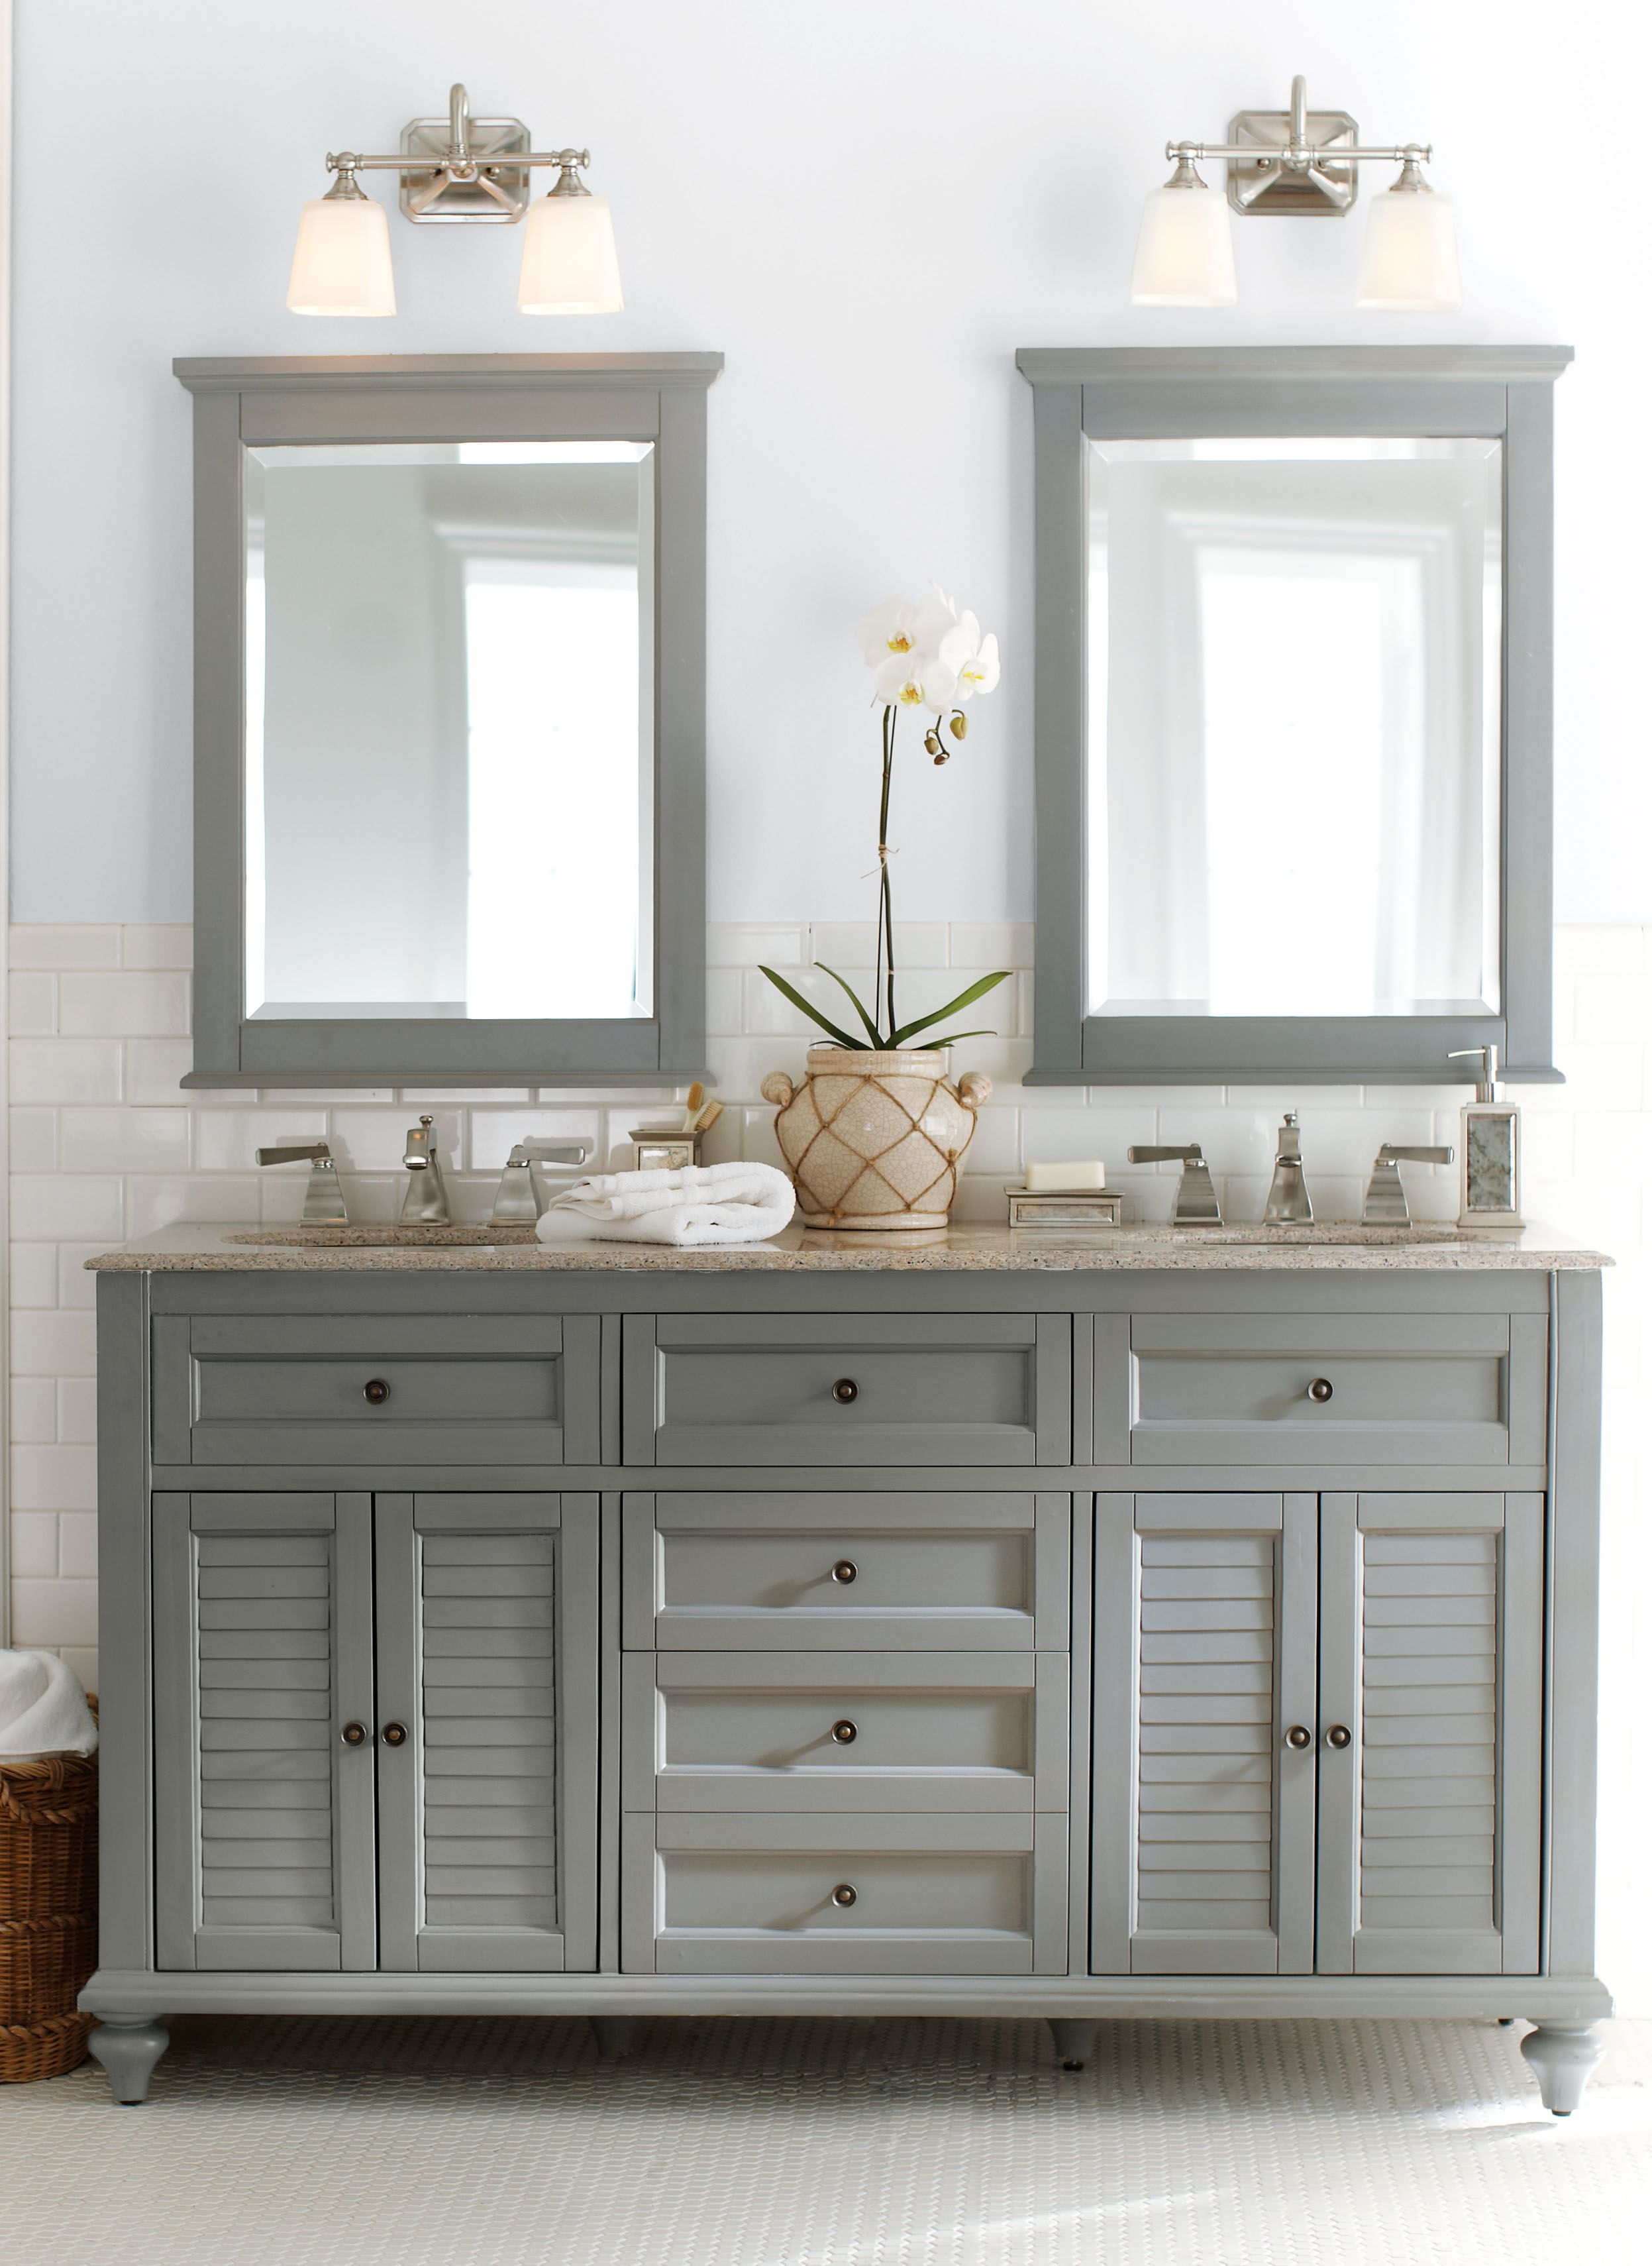 Gorgeous In Grey Double The Fun This Bath Vanity Is A Master